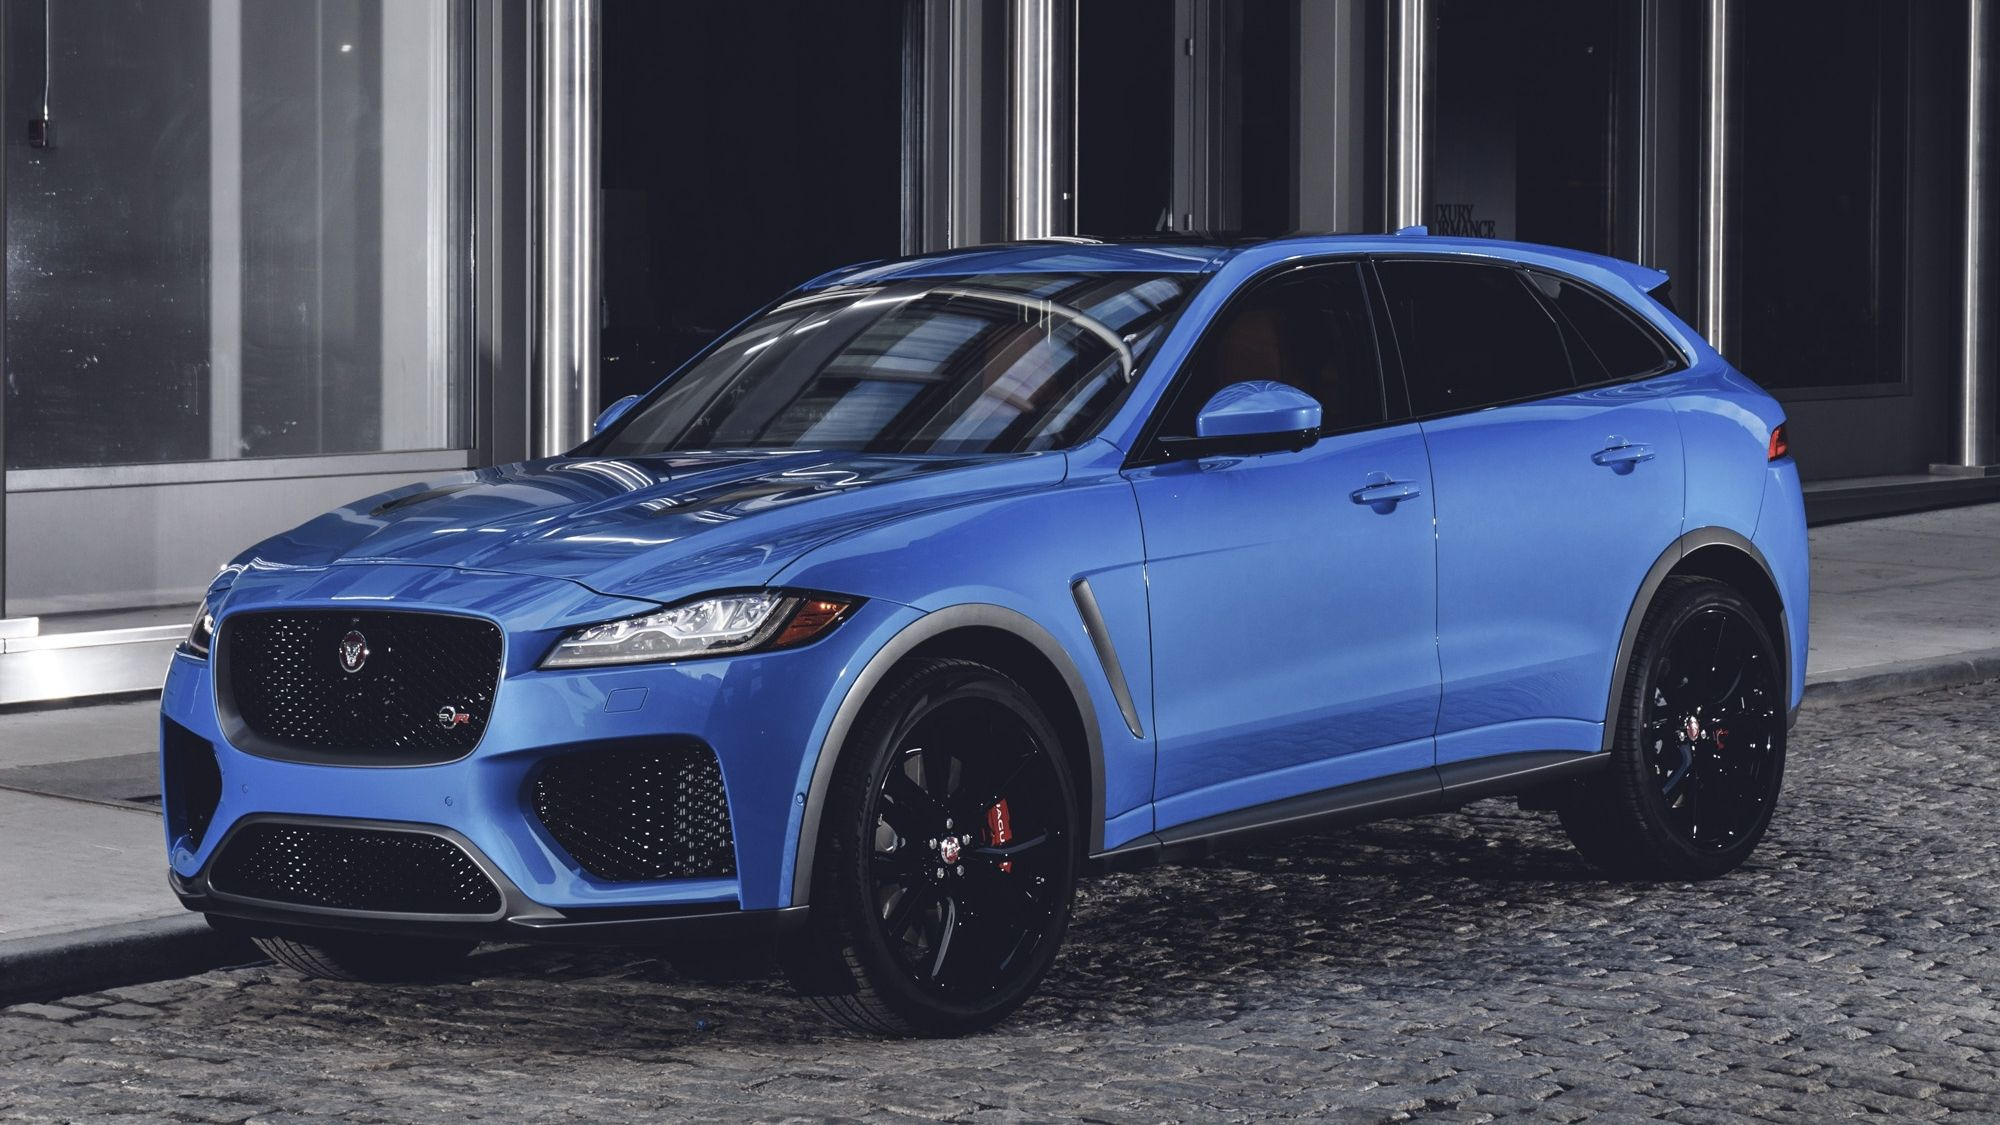 The Jaguar F Pace Svr Will Make You Forget About The Mercedes Amg Glc 63 And The Upcoming Bmw X3 M Top Speed Jaguar Suv Jaguar Land Rover Jaguar Car